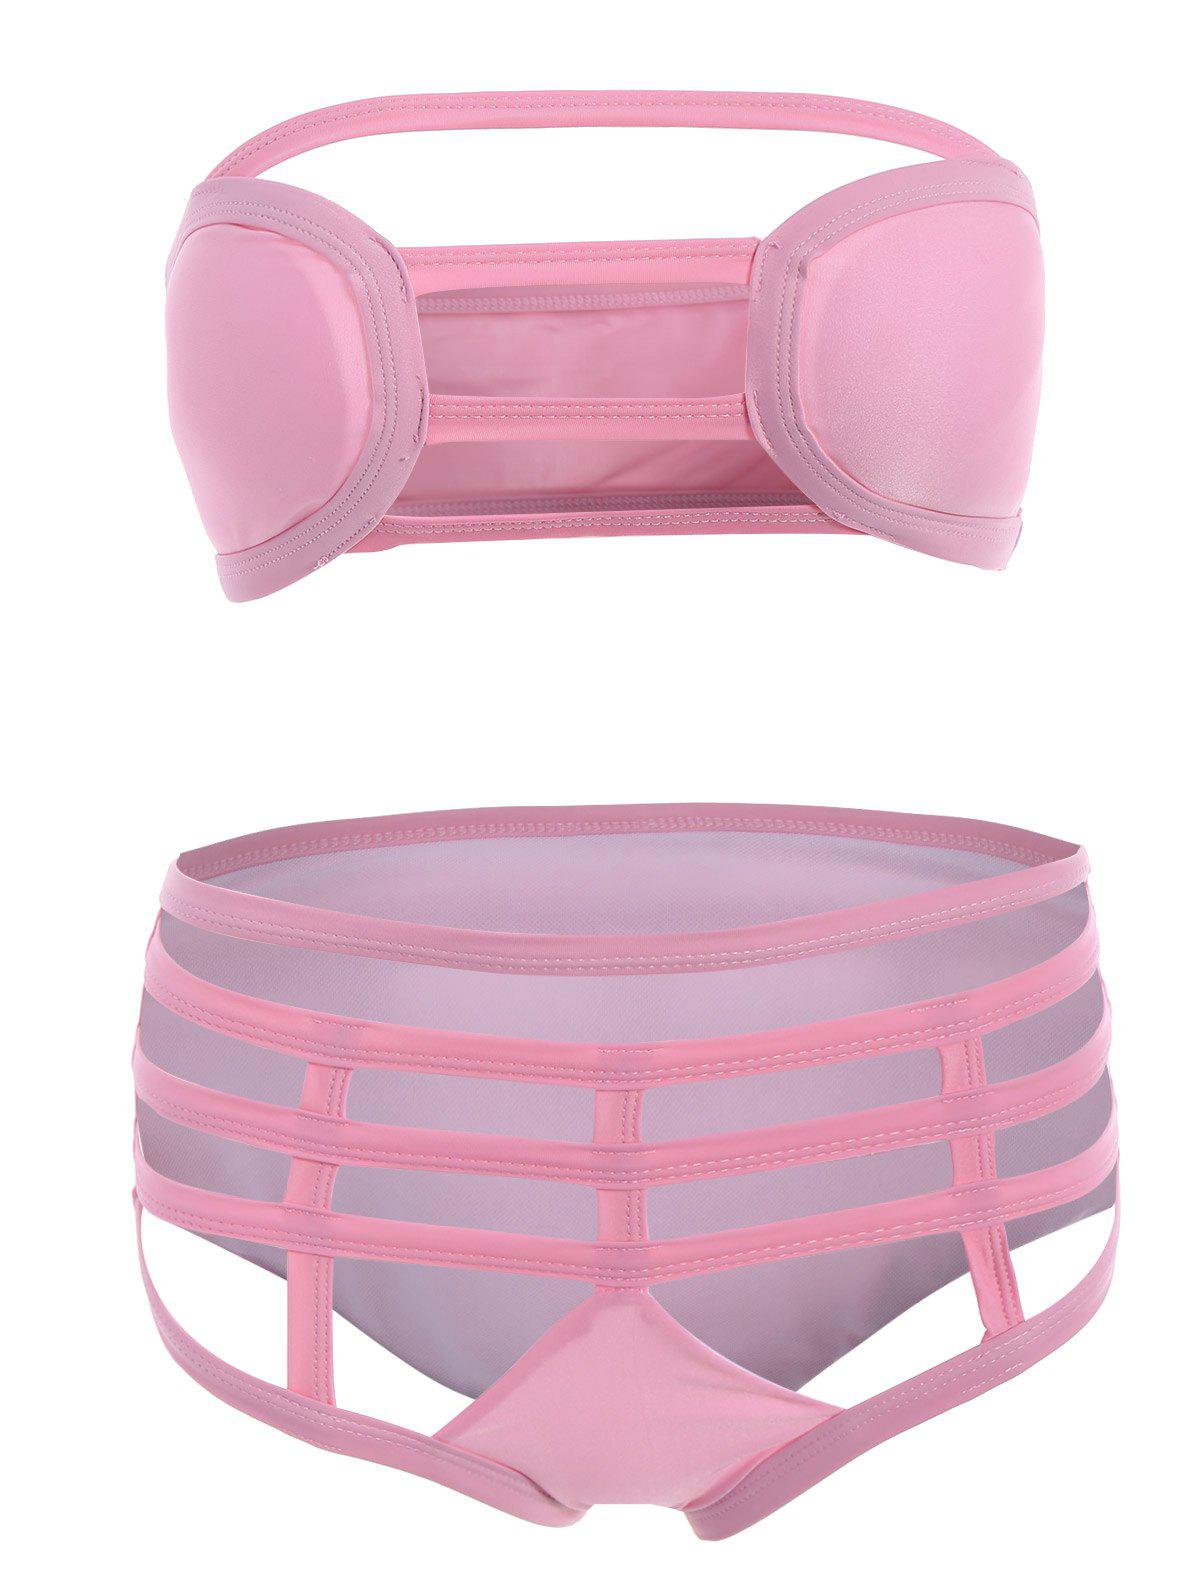 Cut Out Strapless Bathing Suit Bikini Set - SHALLOW PINK L